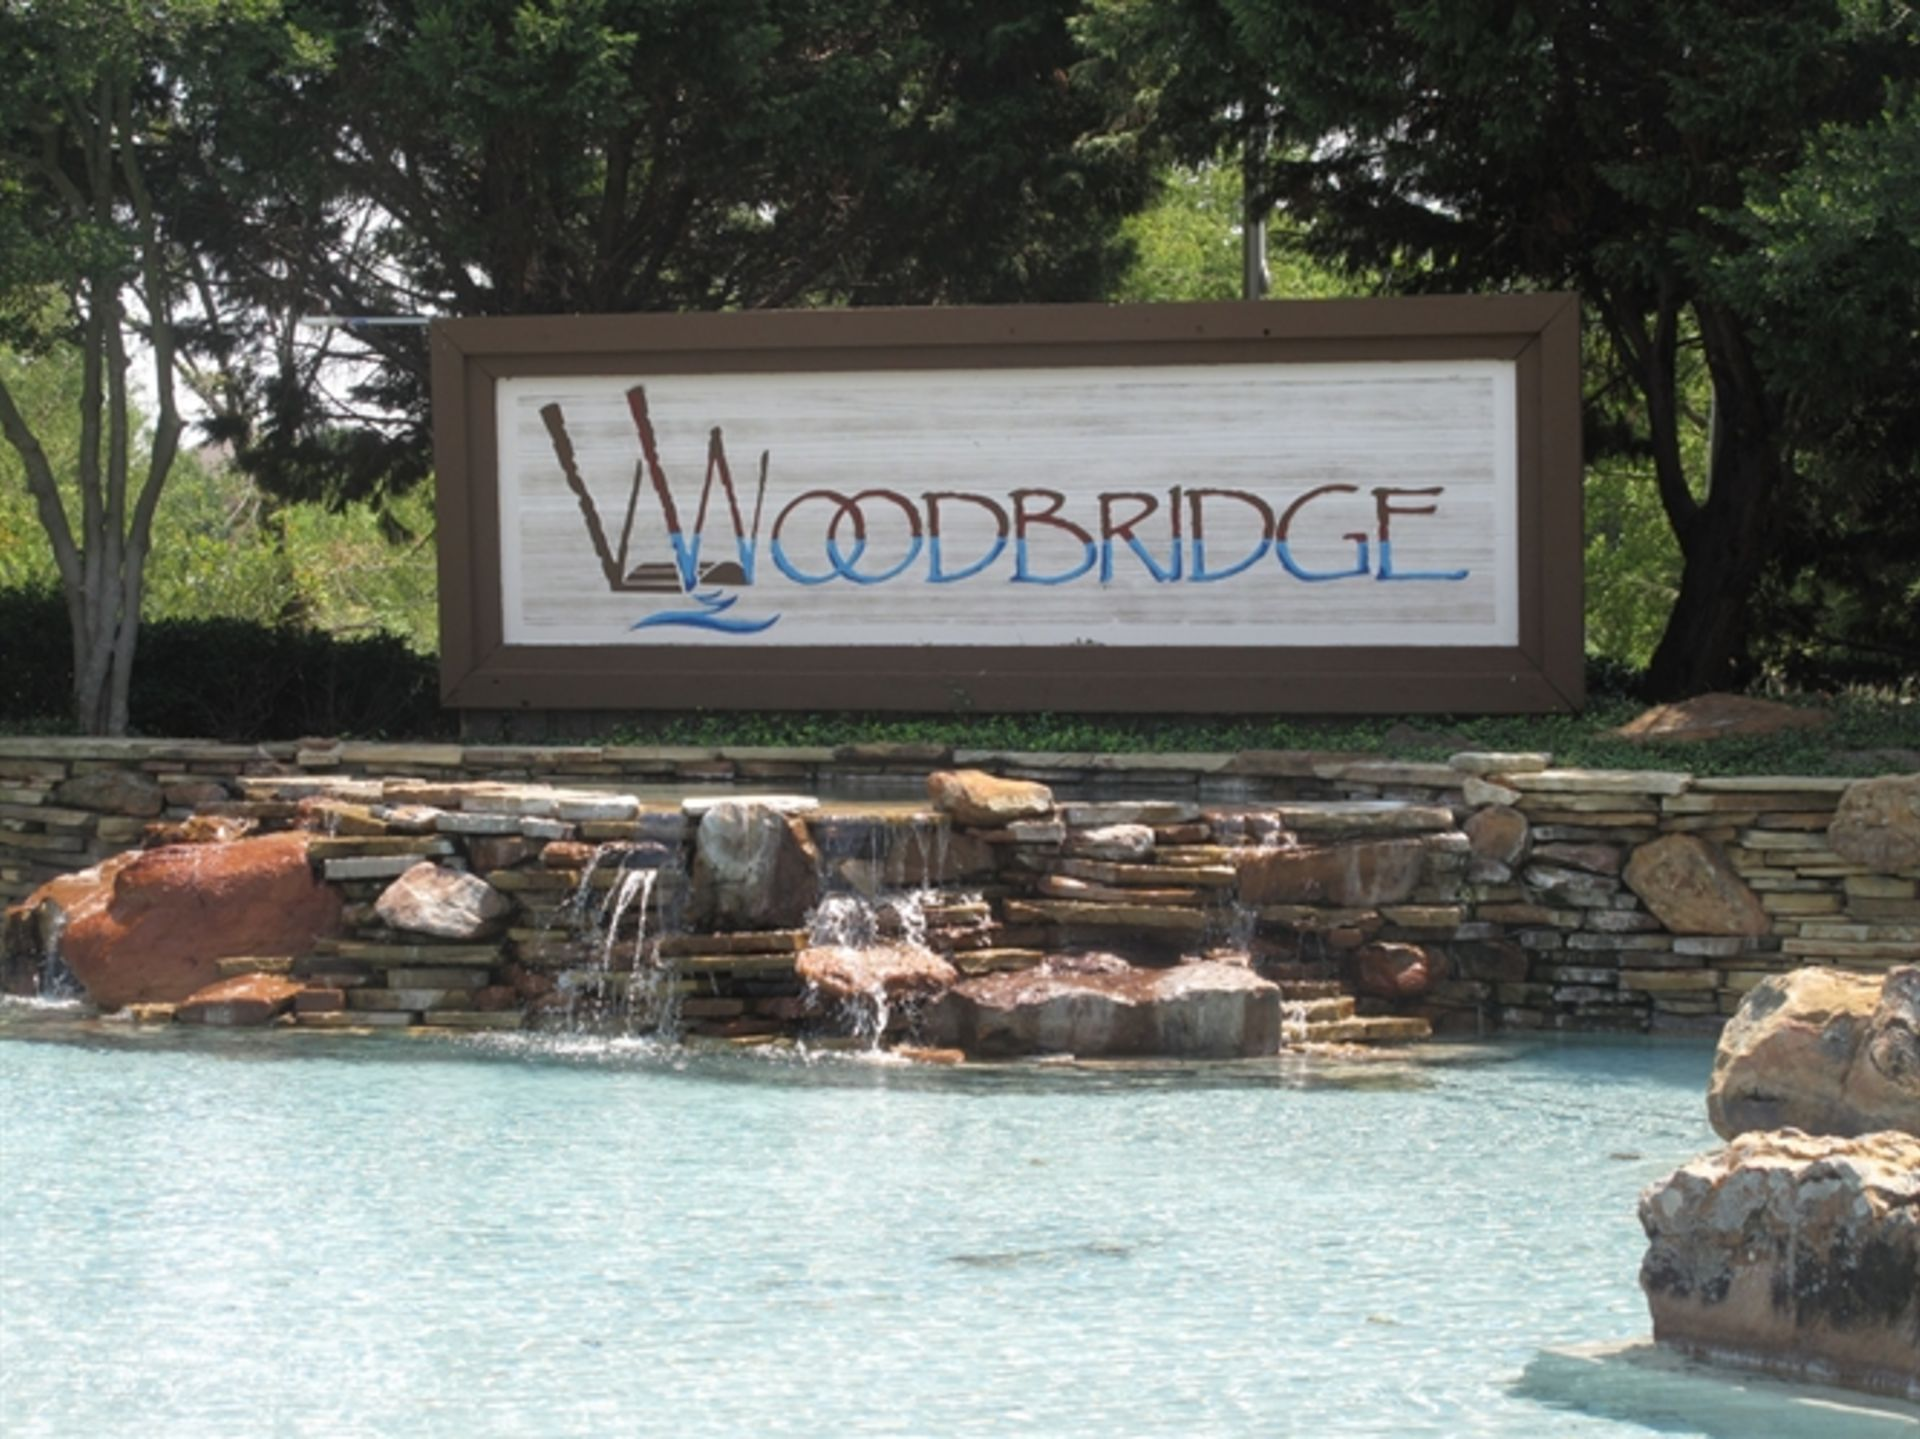 MEMBERS NEEDED FOR THE WOODBRIDGE ARCHITECTURAL REVIEW COMMITTEE (ARC)